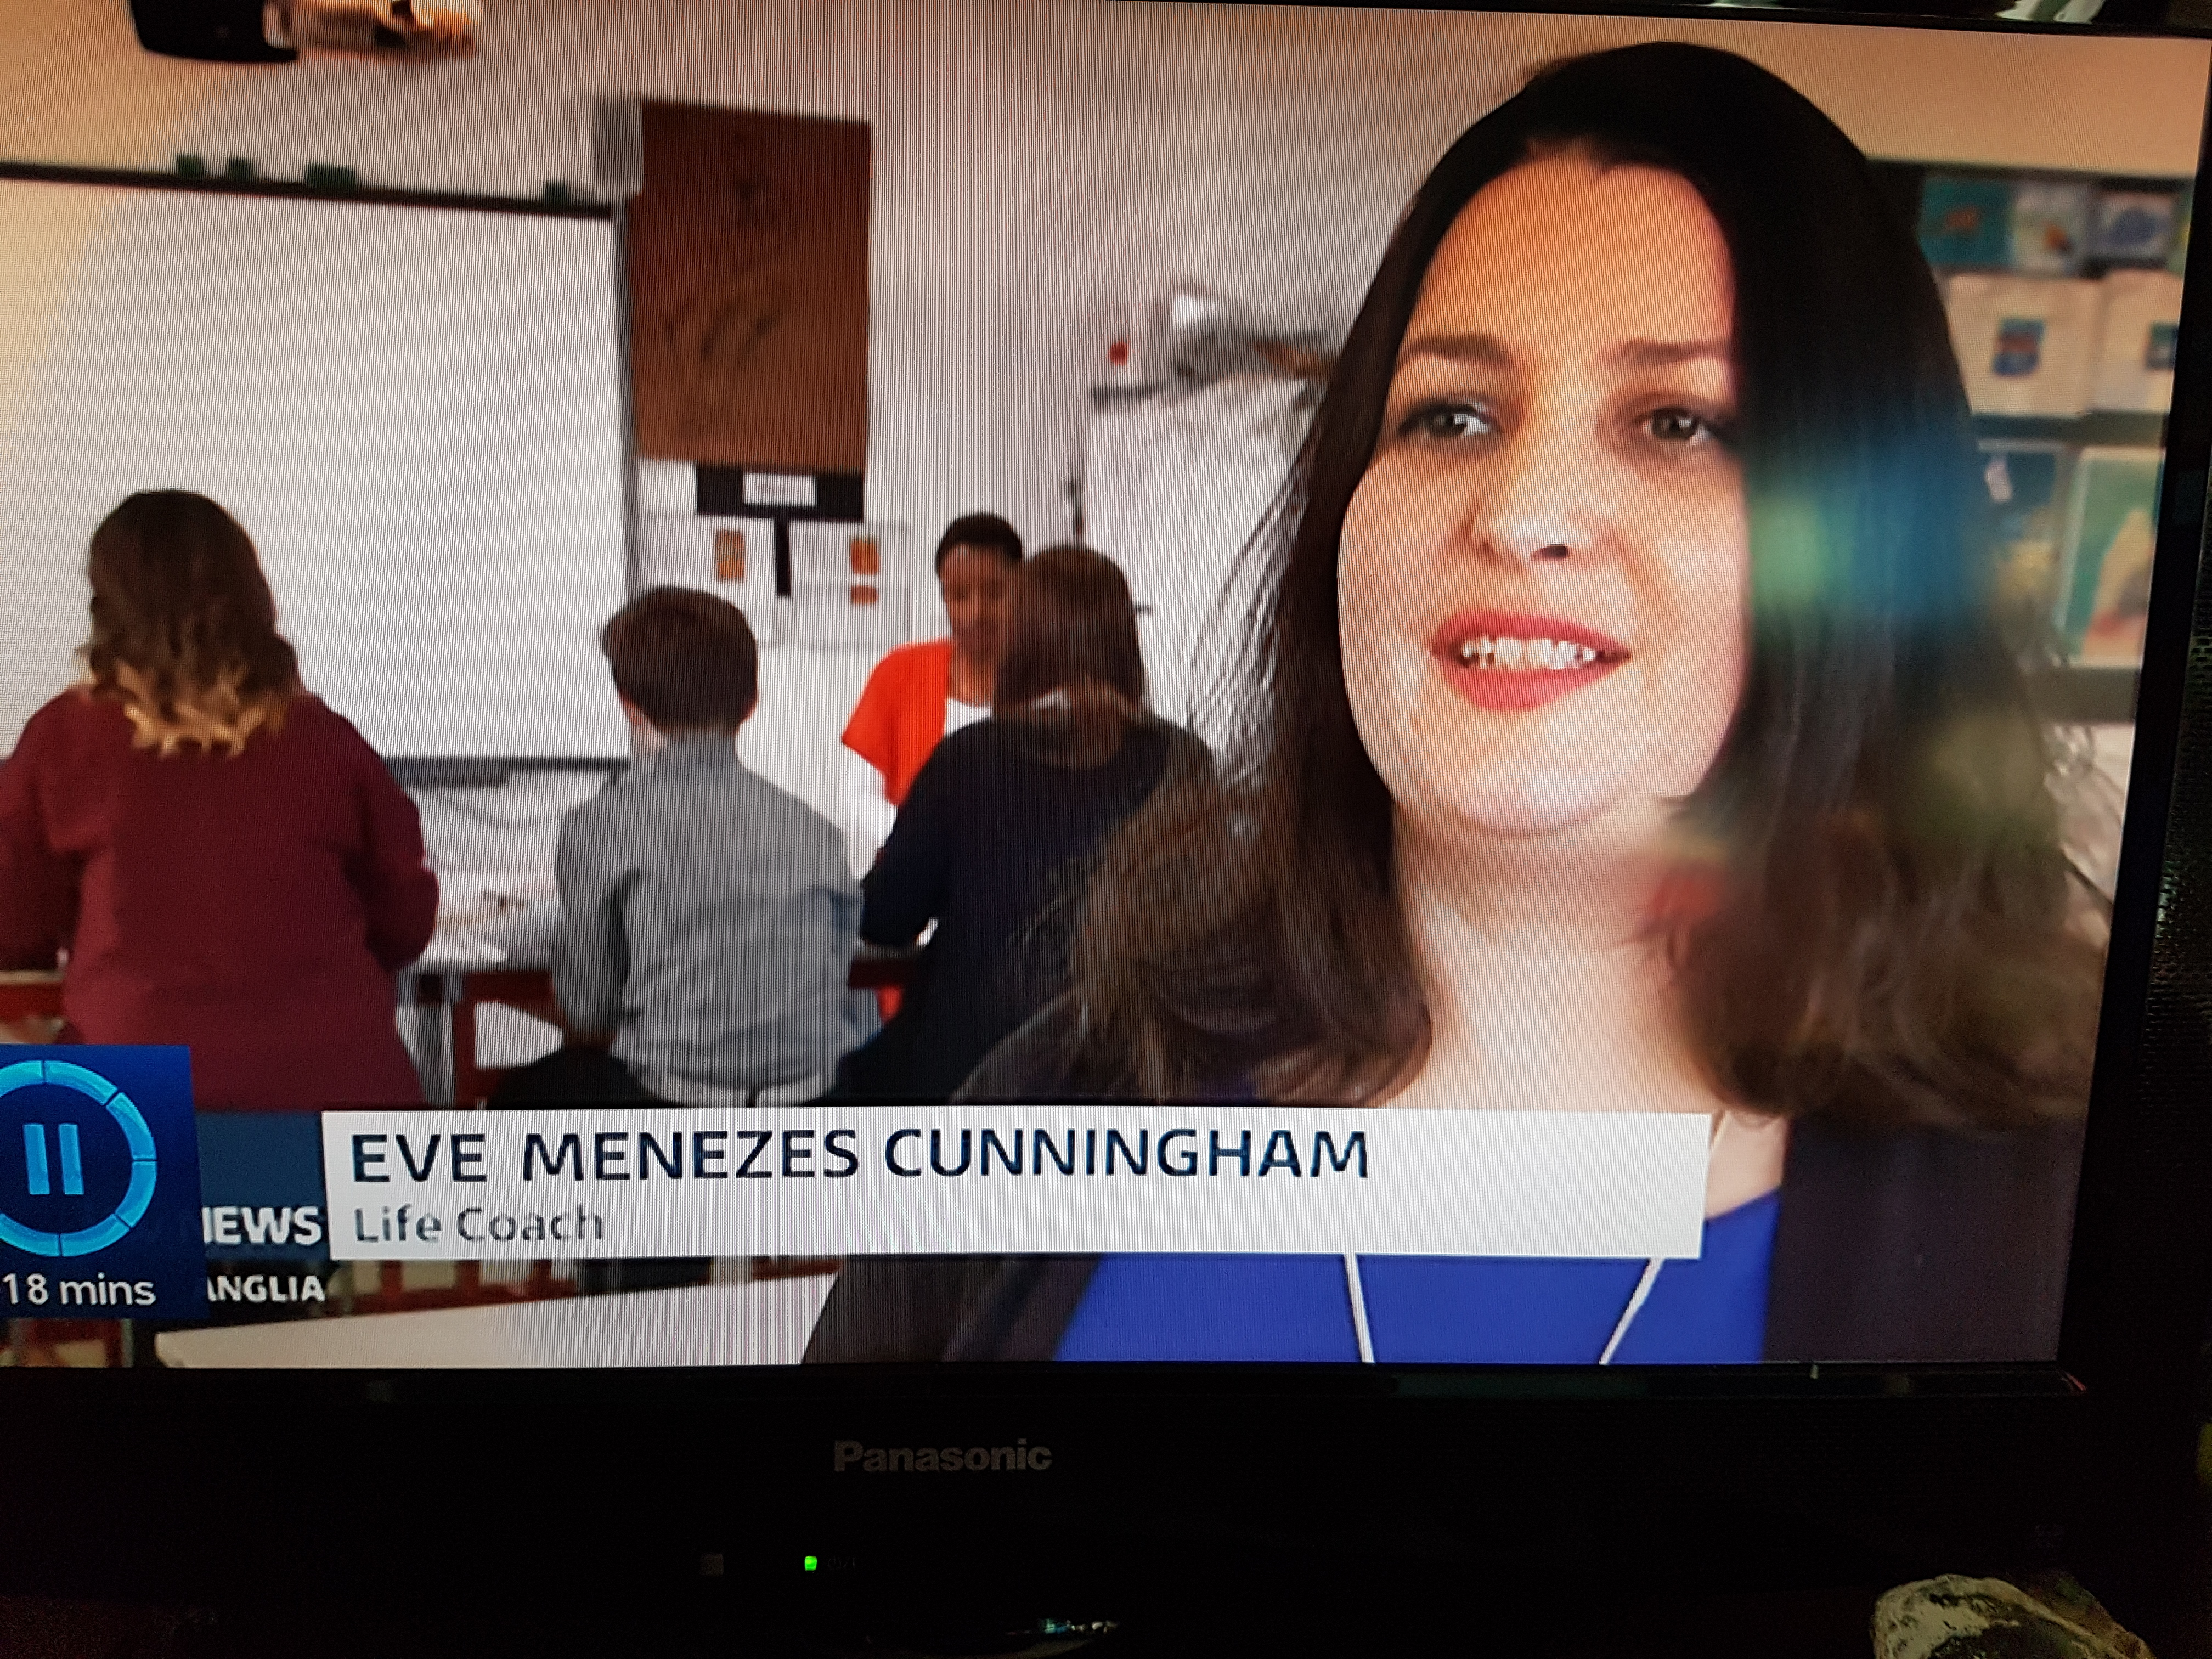 Eve Menezes Cunningham life coach ITV News vision boards